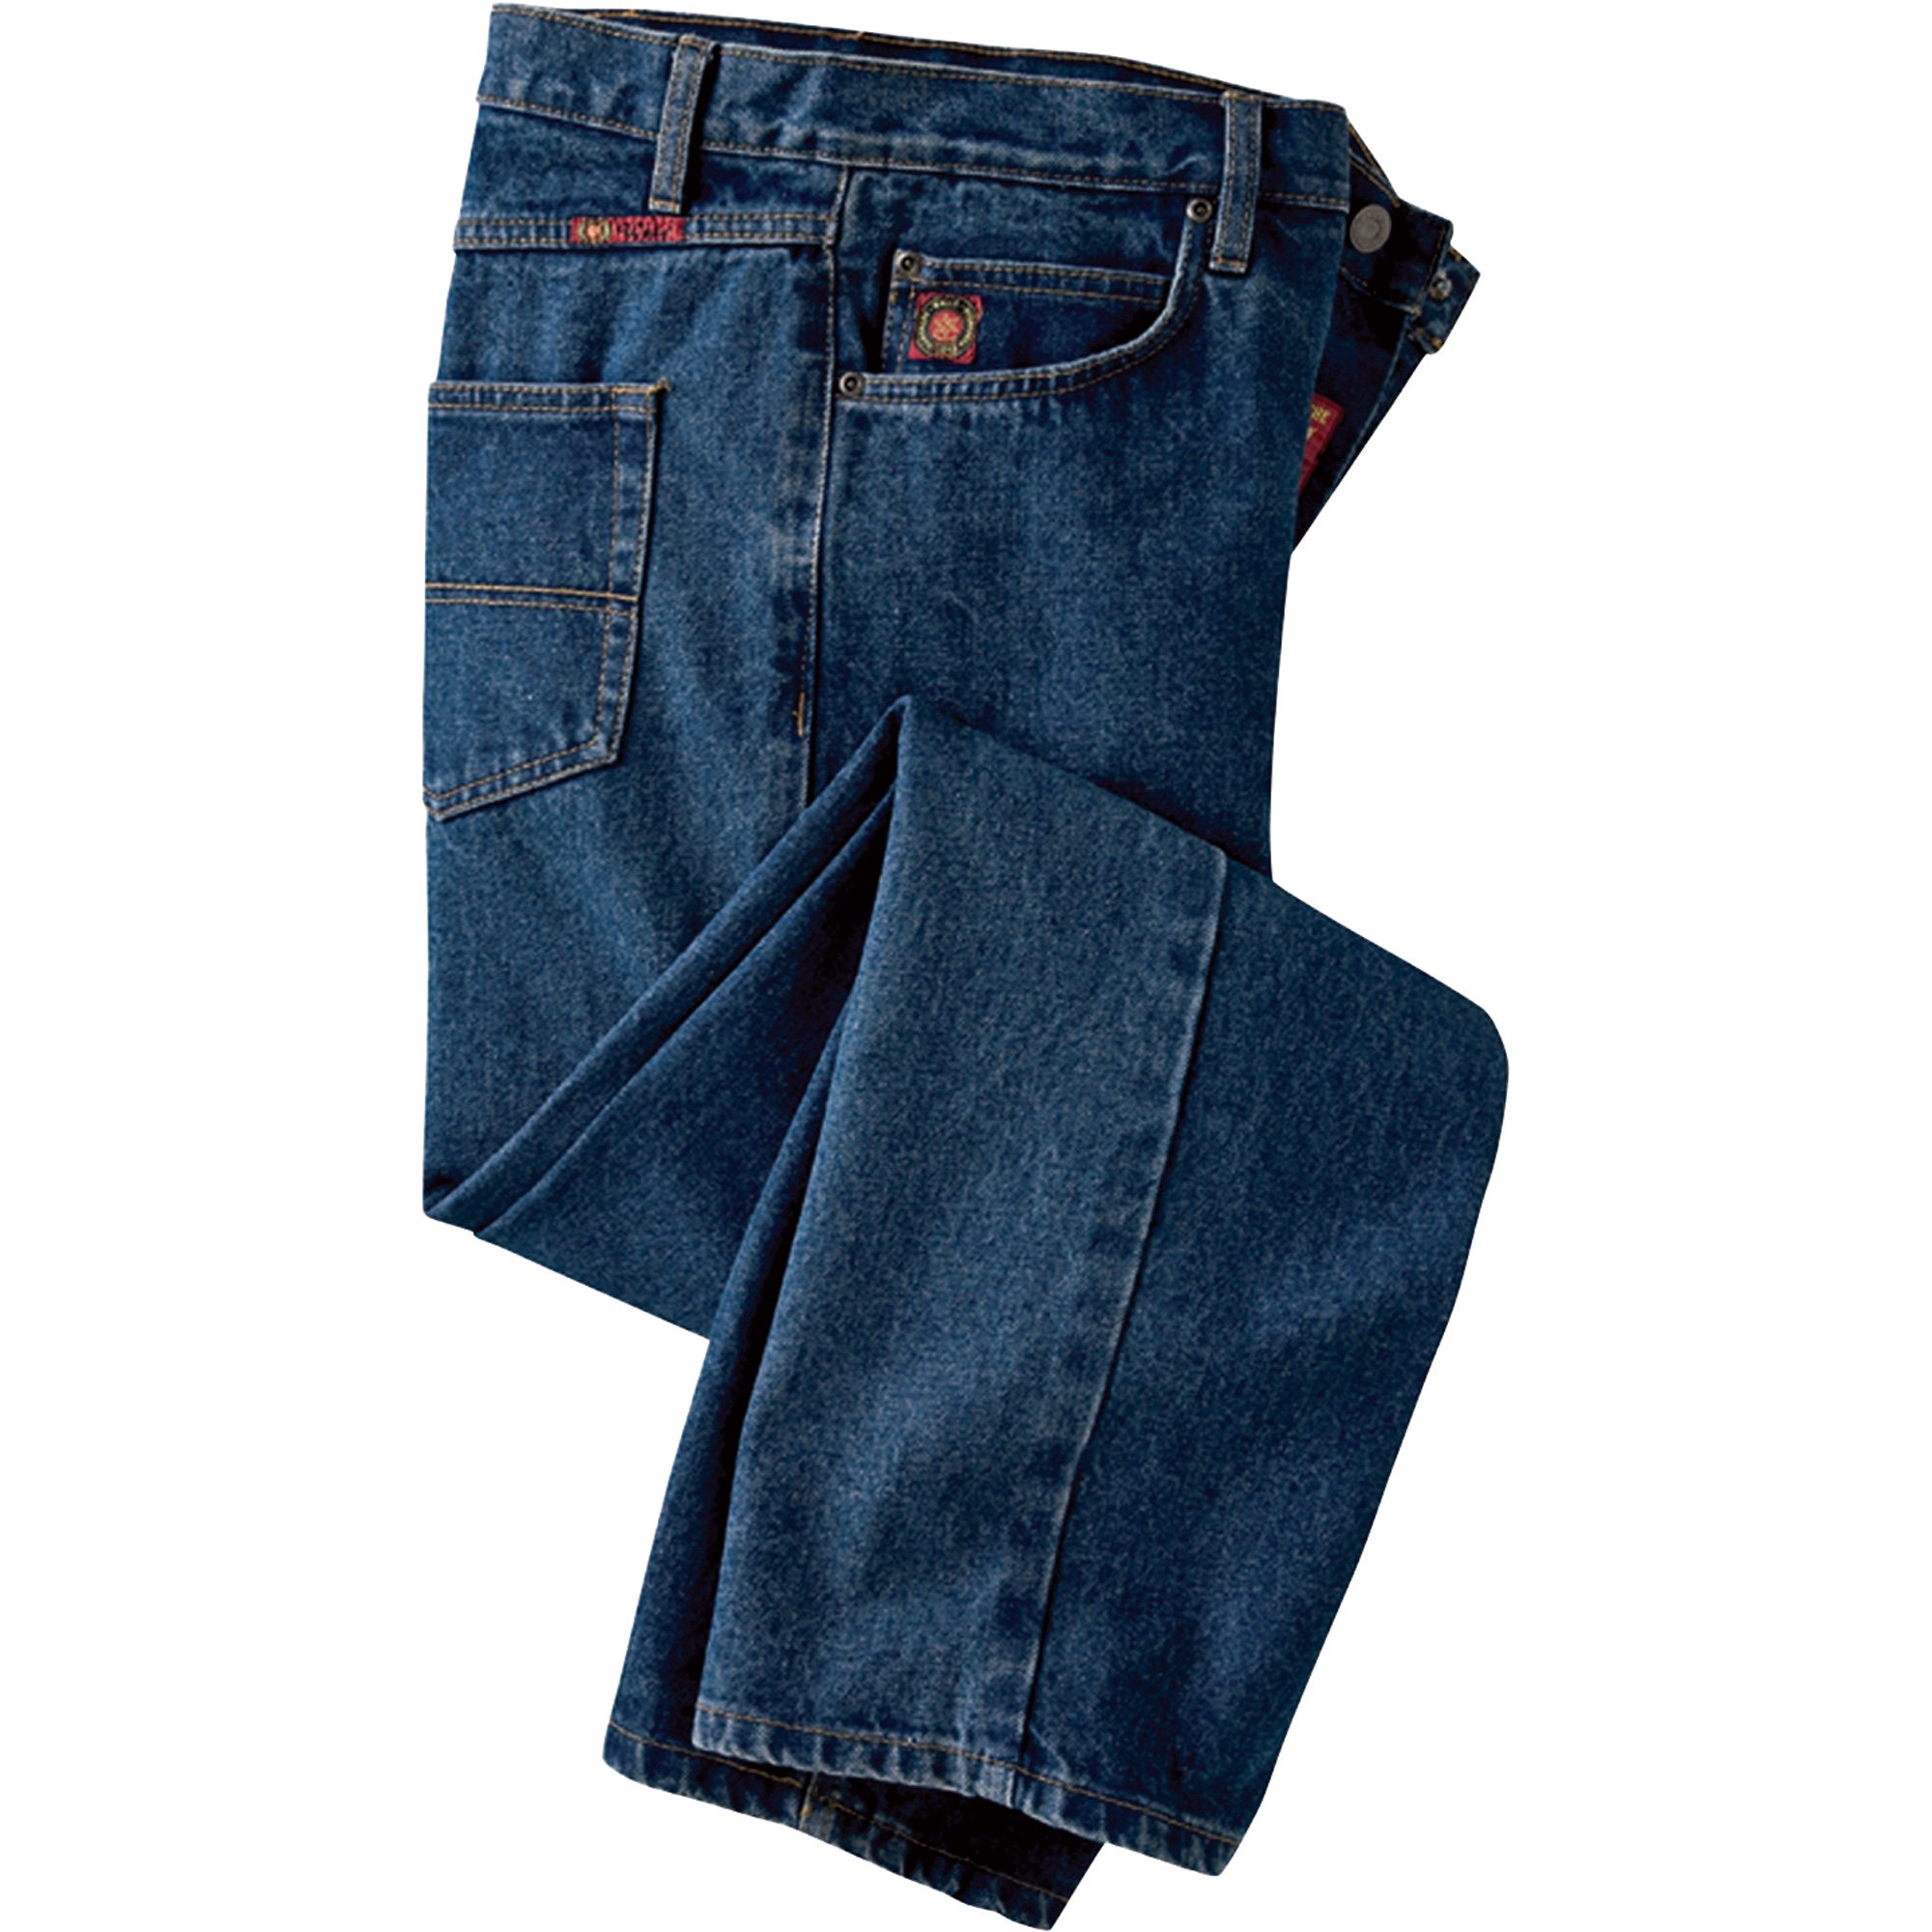 We are the pant fit experts and we have been designing jeans and pants for the plus size customer--our customer--for decades. Since we are solely focused on sizes 12WW, we don't start from a .